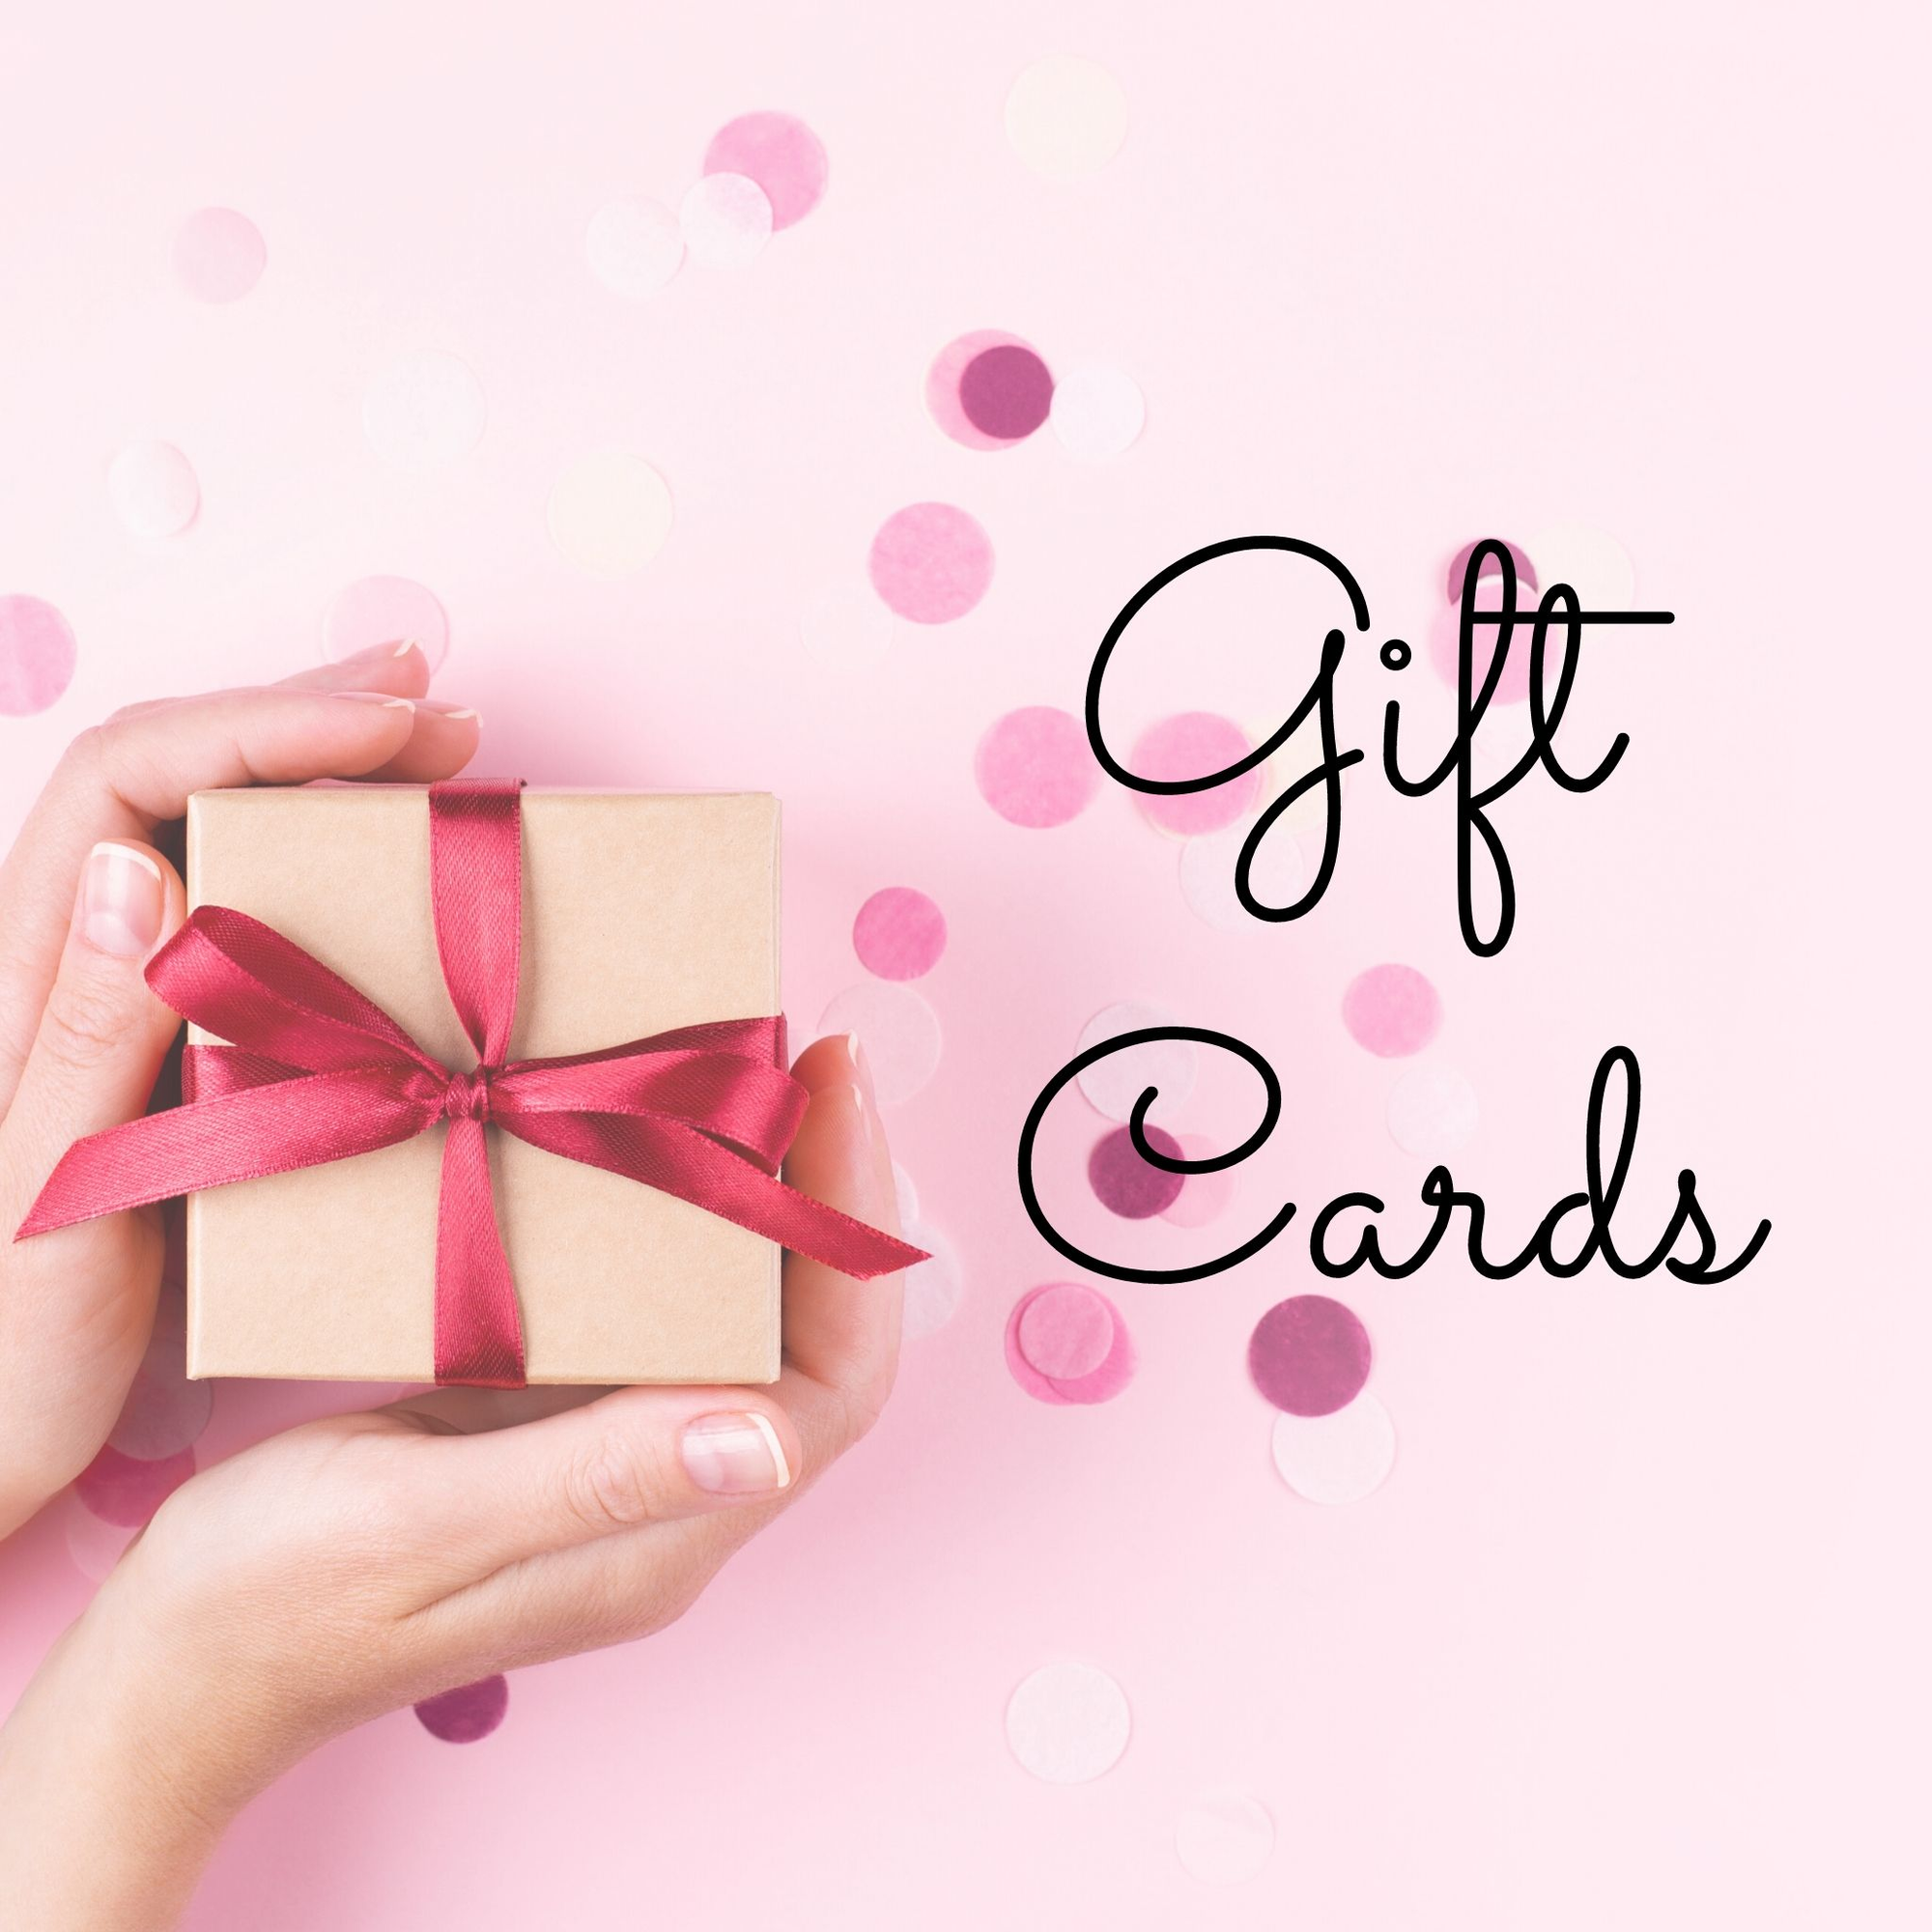 A woman's hands hold a gift wrapped box tied with red ribbon, on a pink background with confetti; the words Gift Cards sits to the right